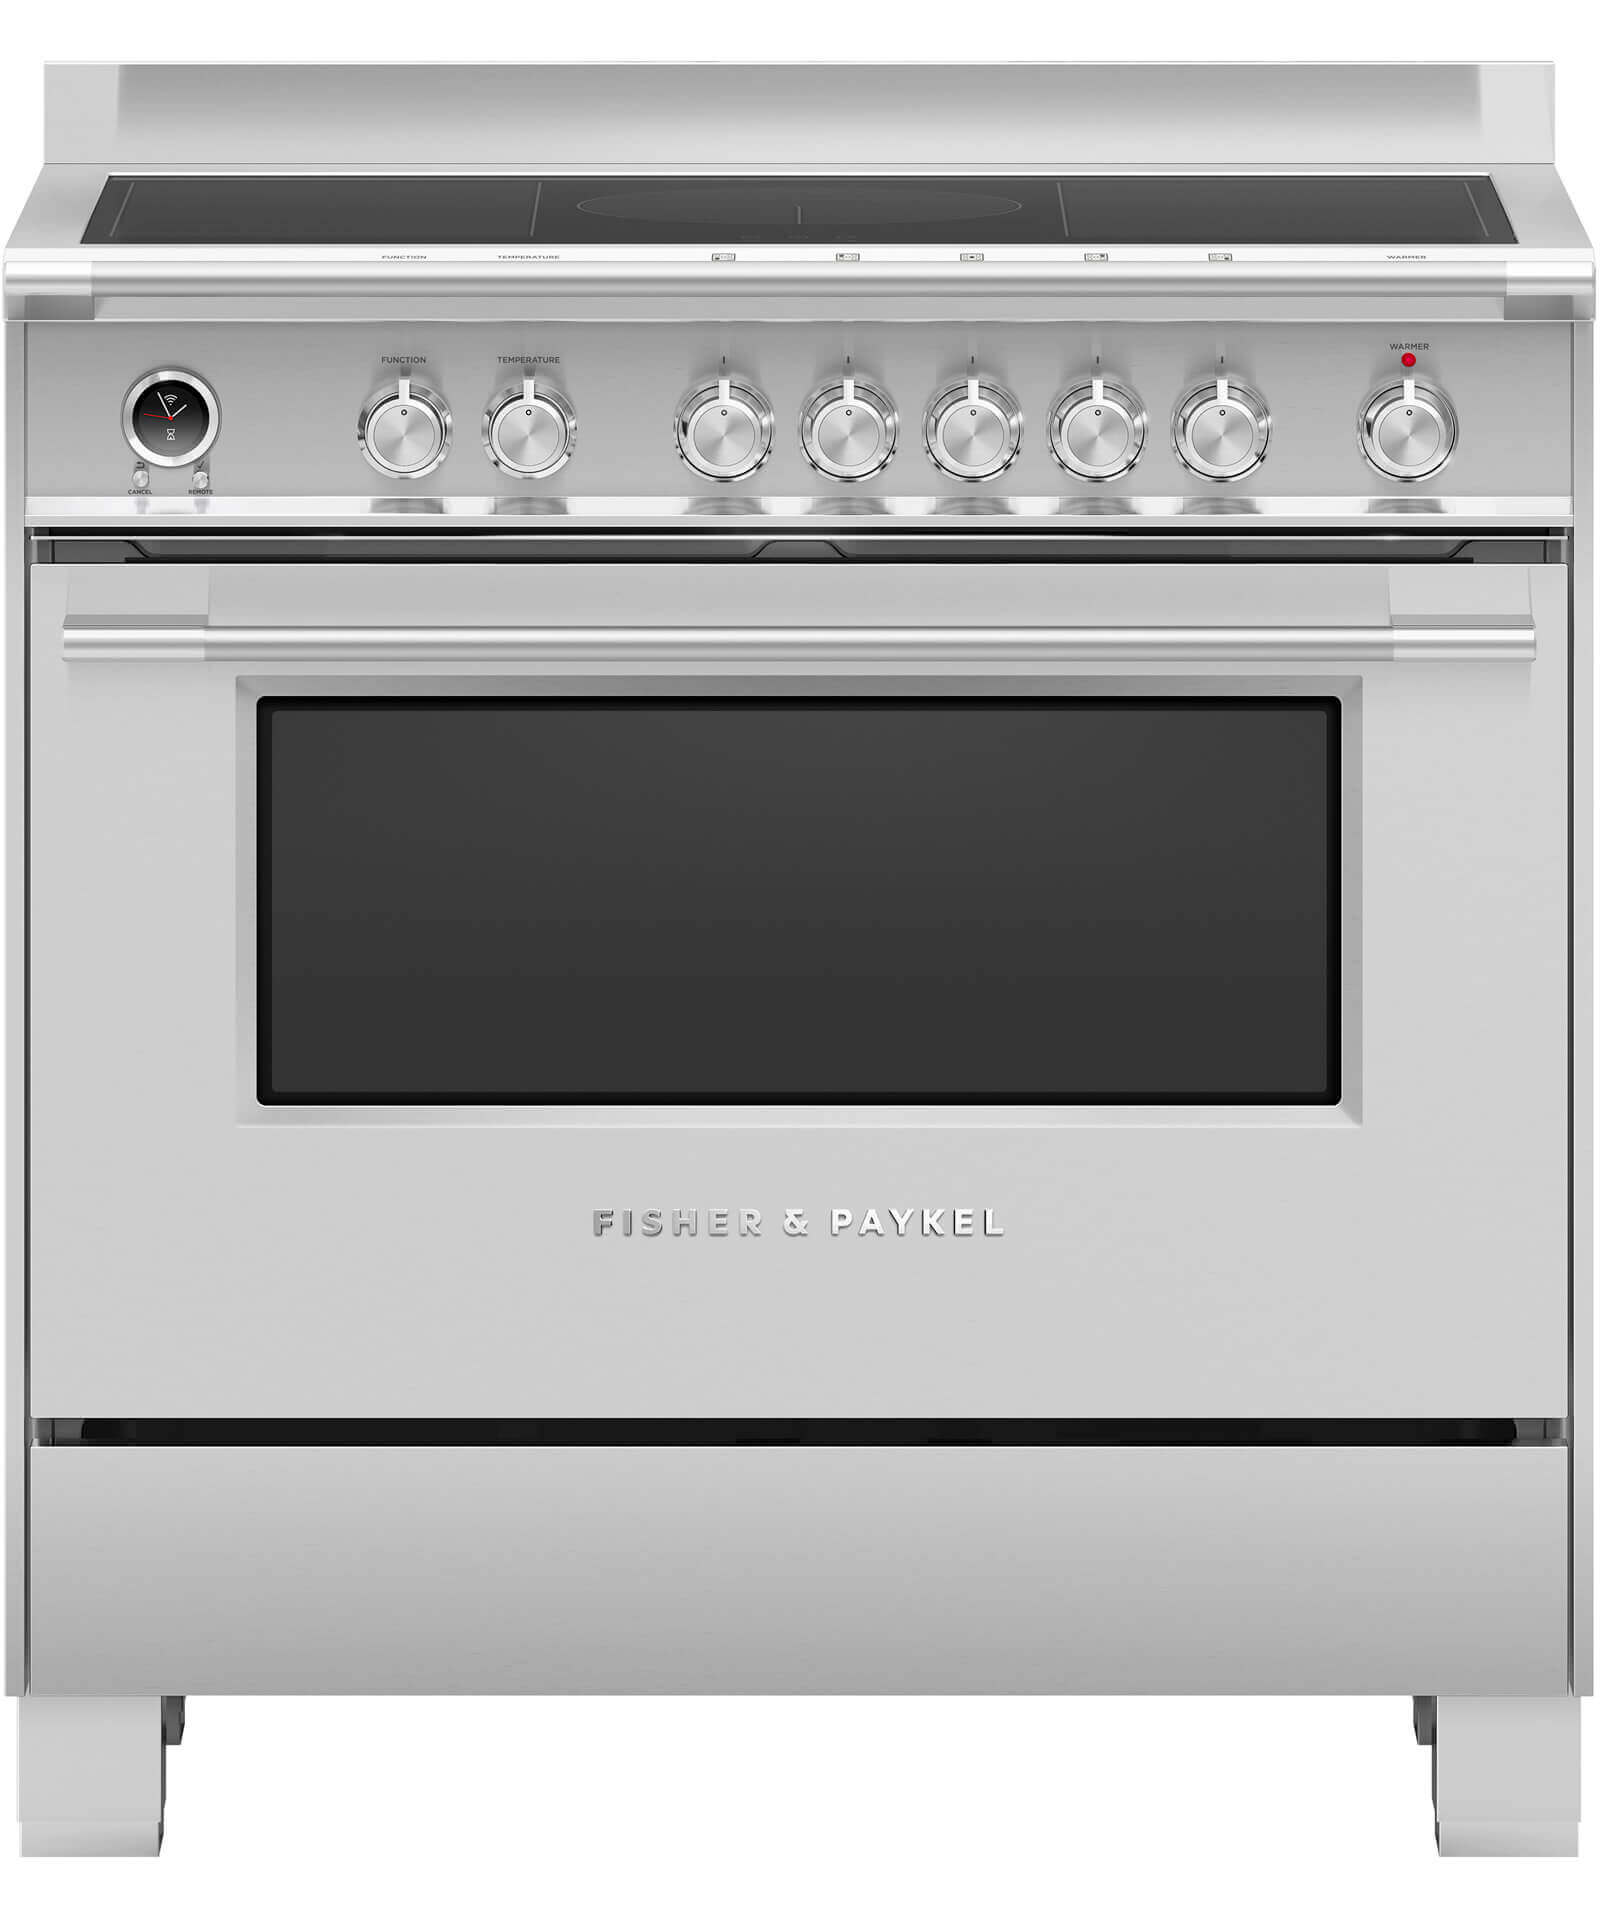 Or90sci6x1 90cm Freestanding Induction Range Cooker Series 6 81280